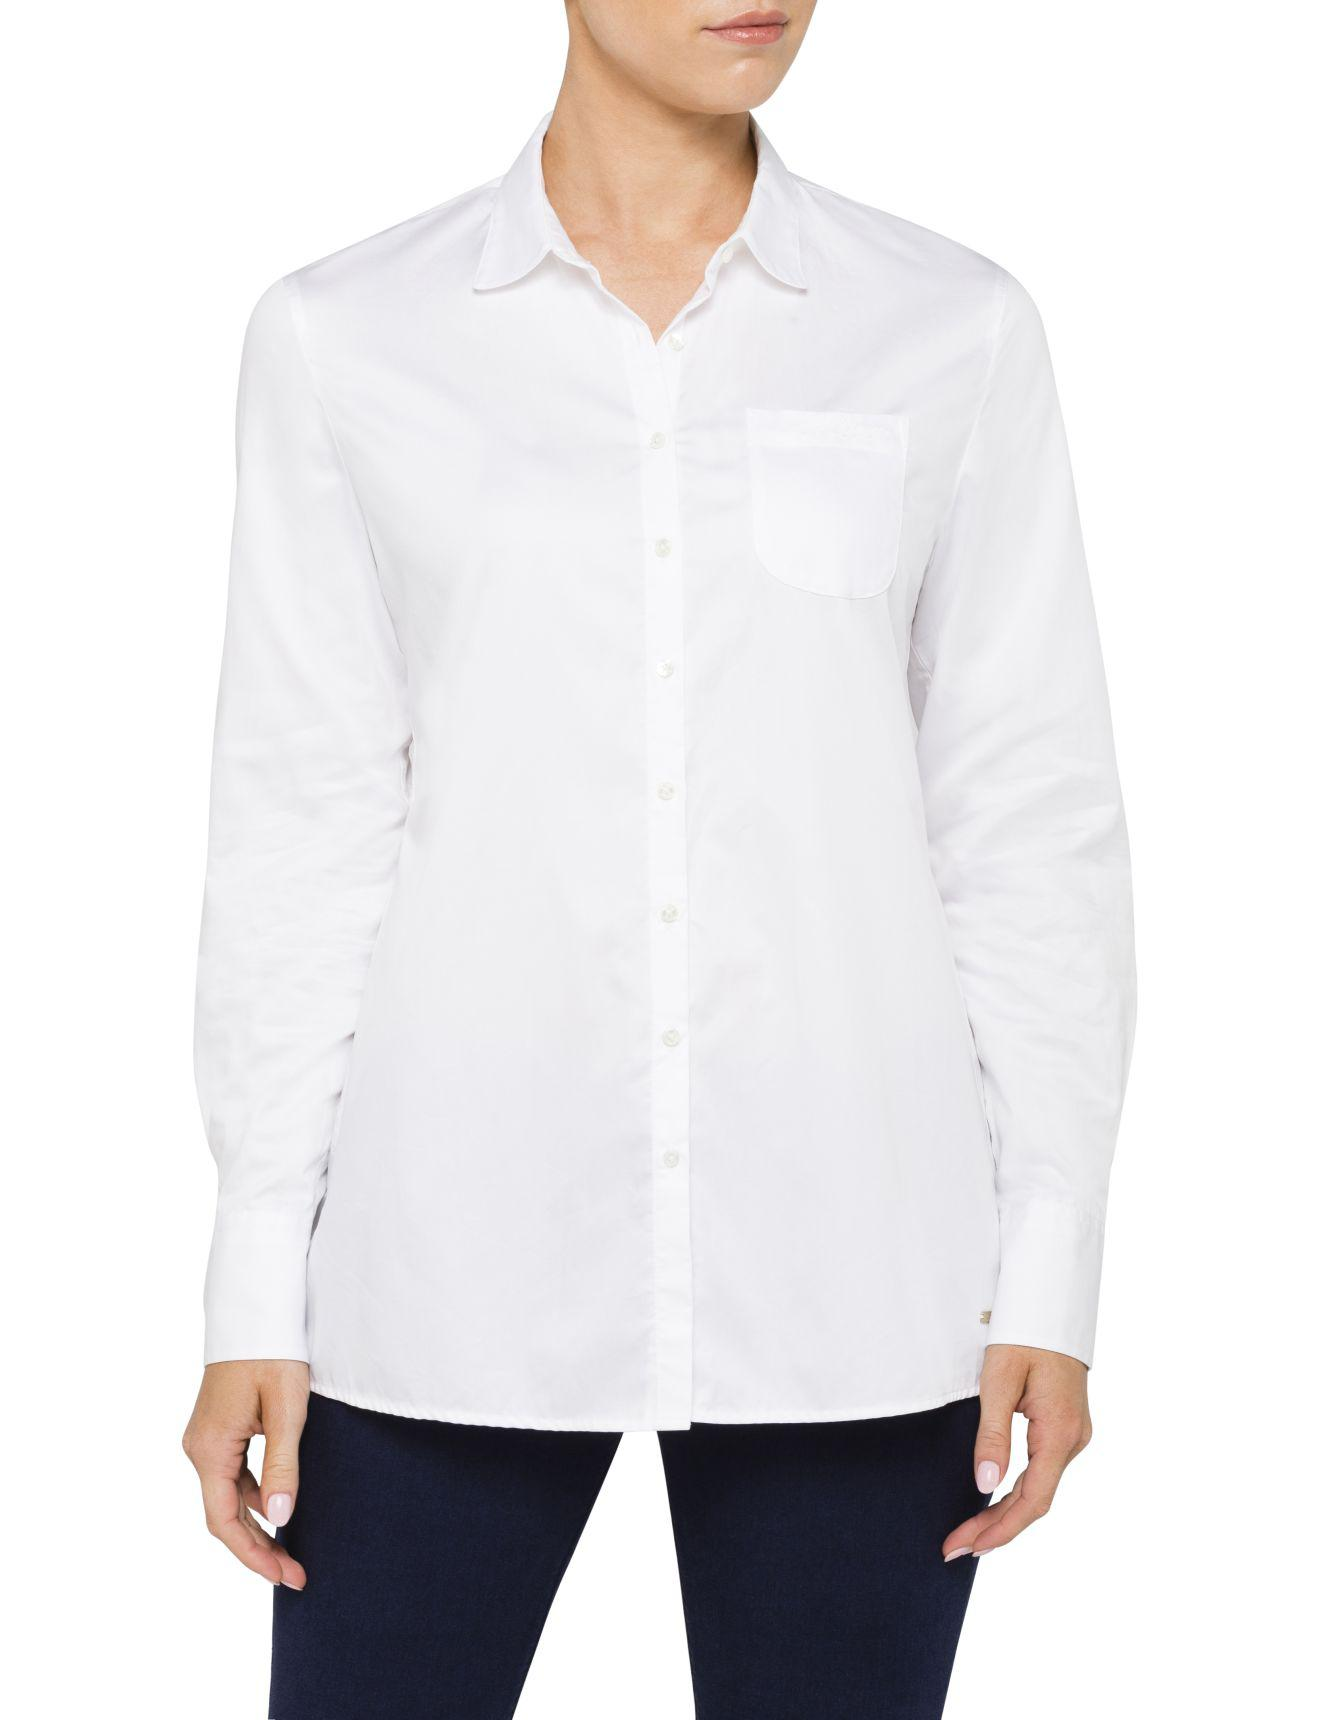 9eac7c0747d9f Tommy Hilfiger Arwin Pique Trim Shirt Ls A-line in White - Lyst